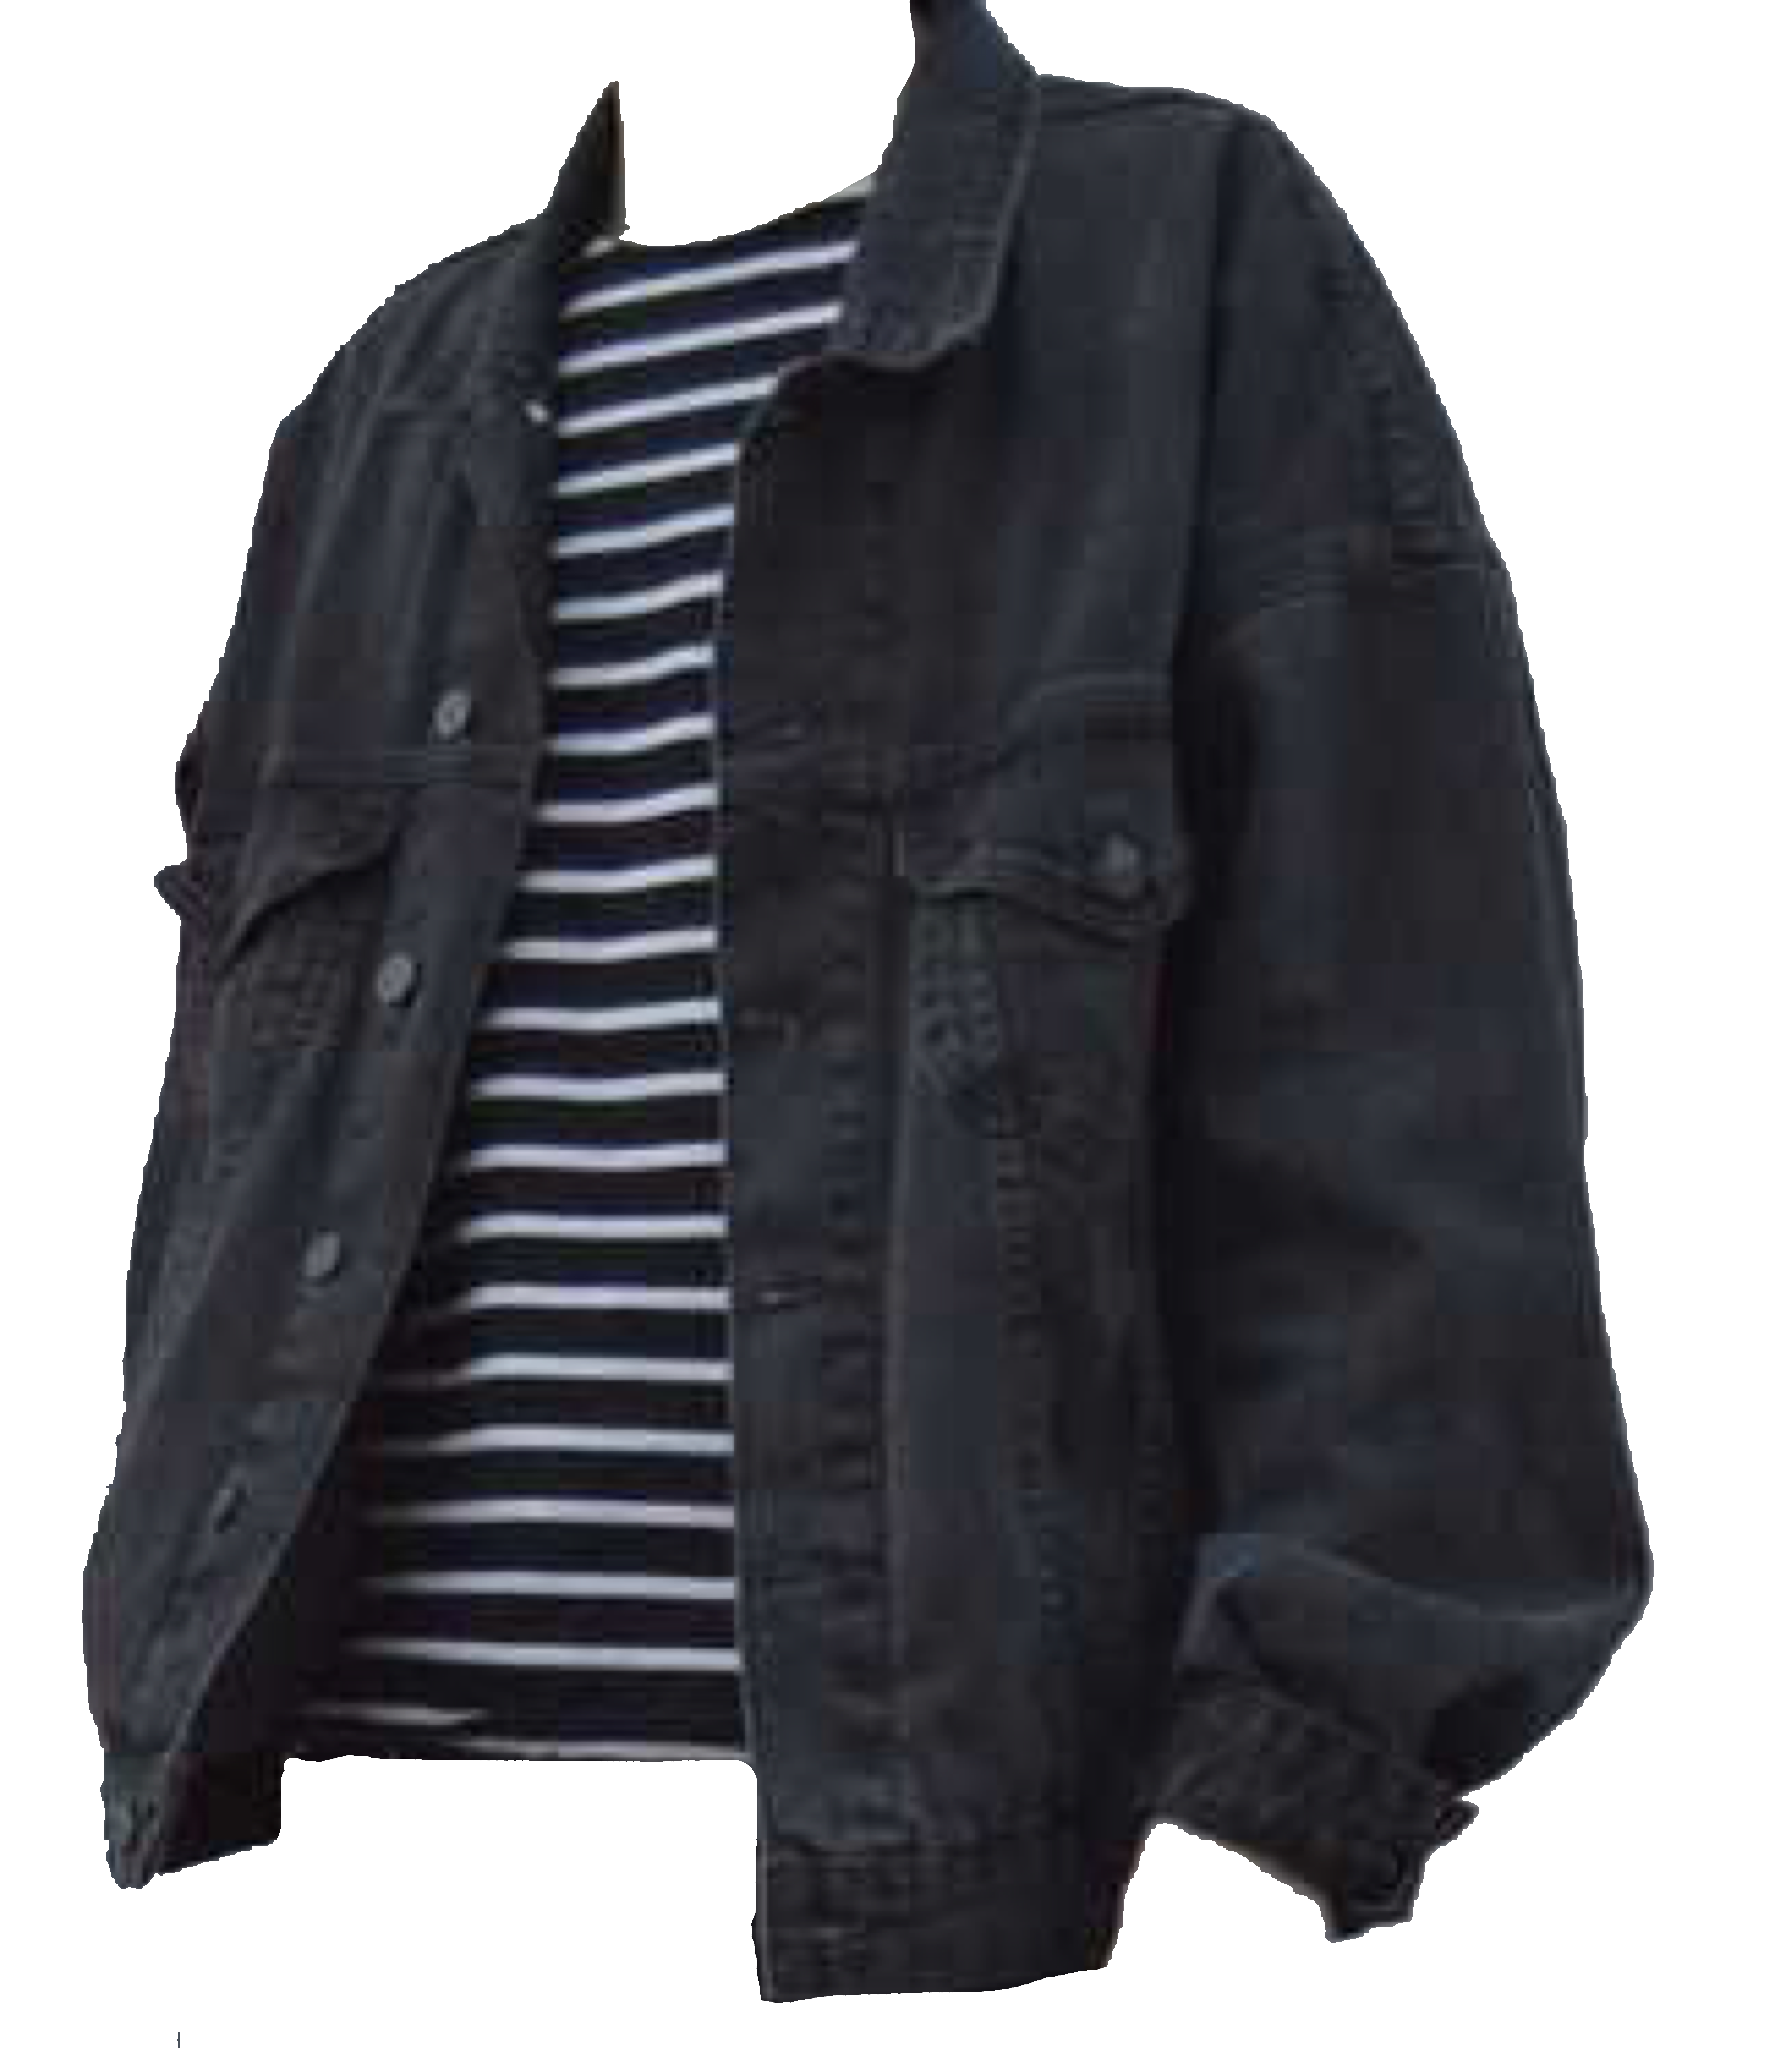 Pin By Kate On Misc Personal Style Insp Aesthetic Clothes Black Jean Jacket Cool Outfits